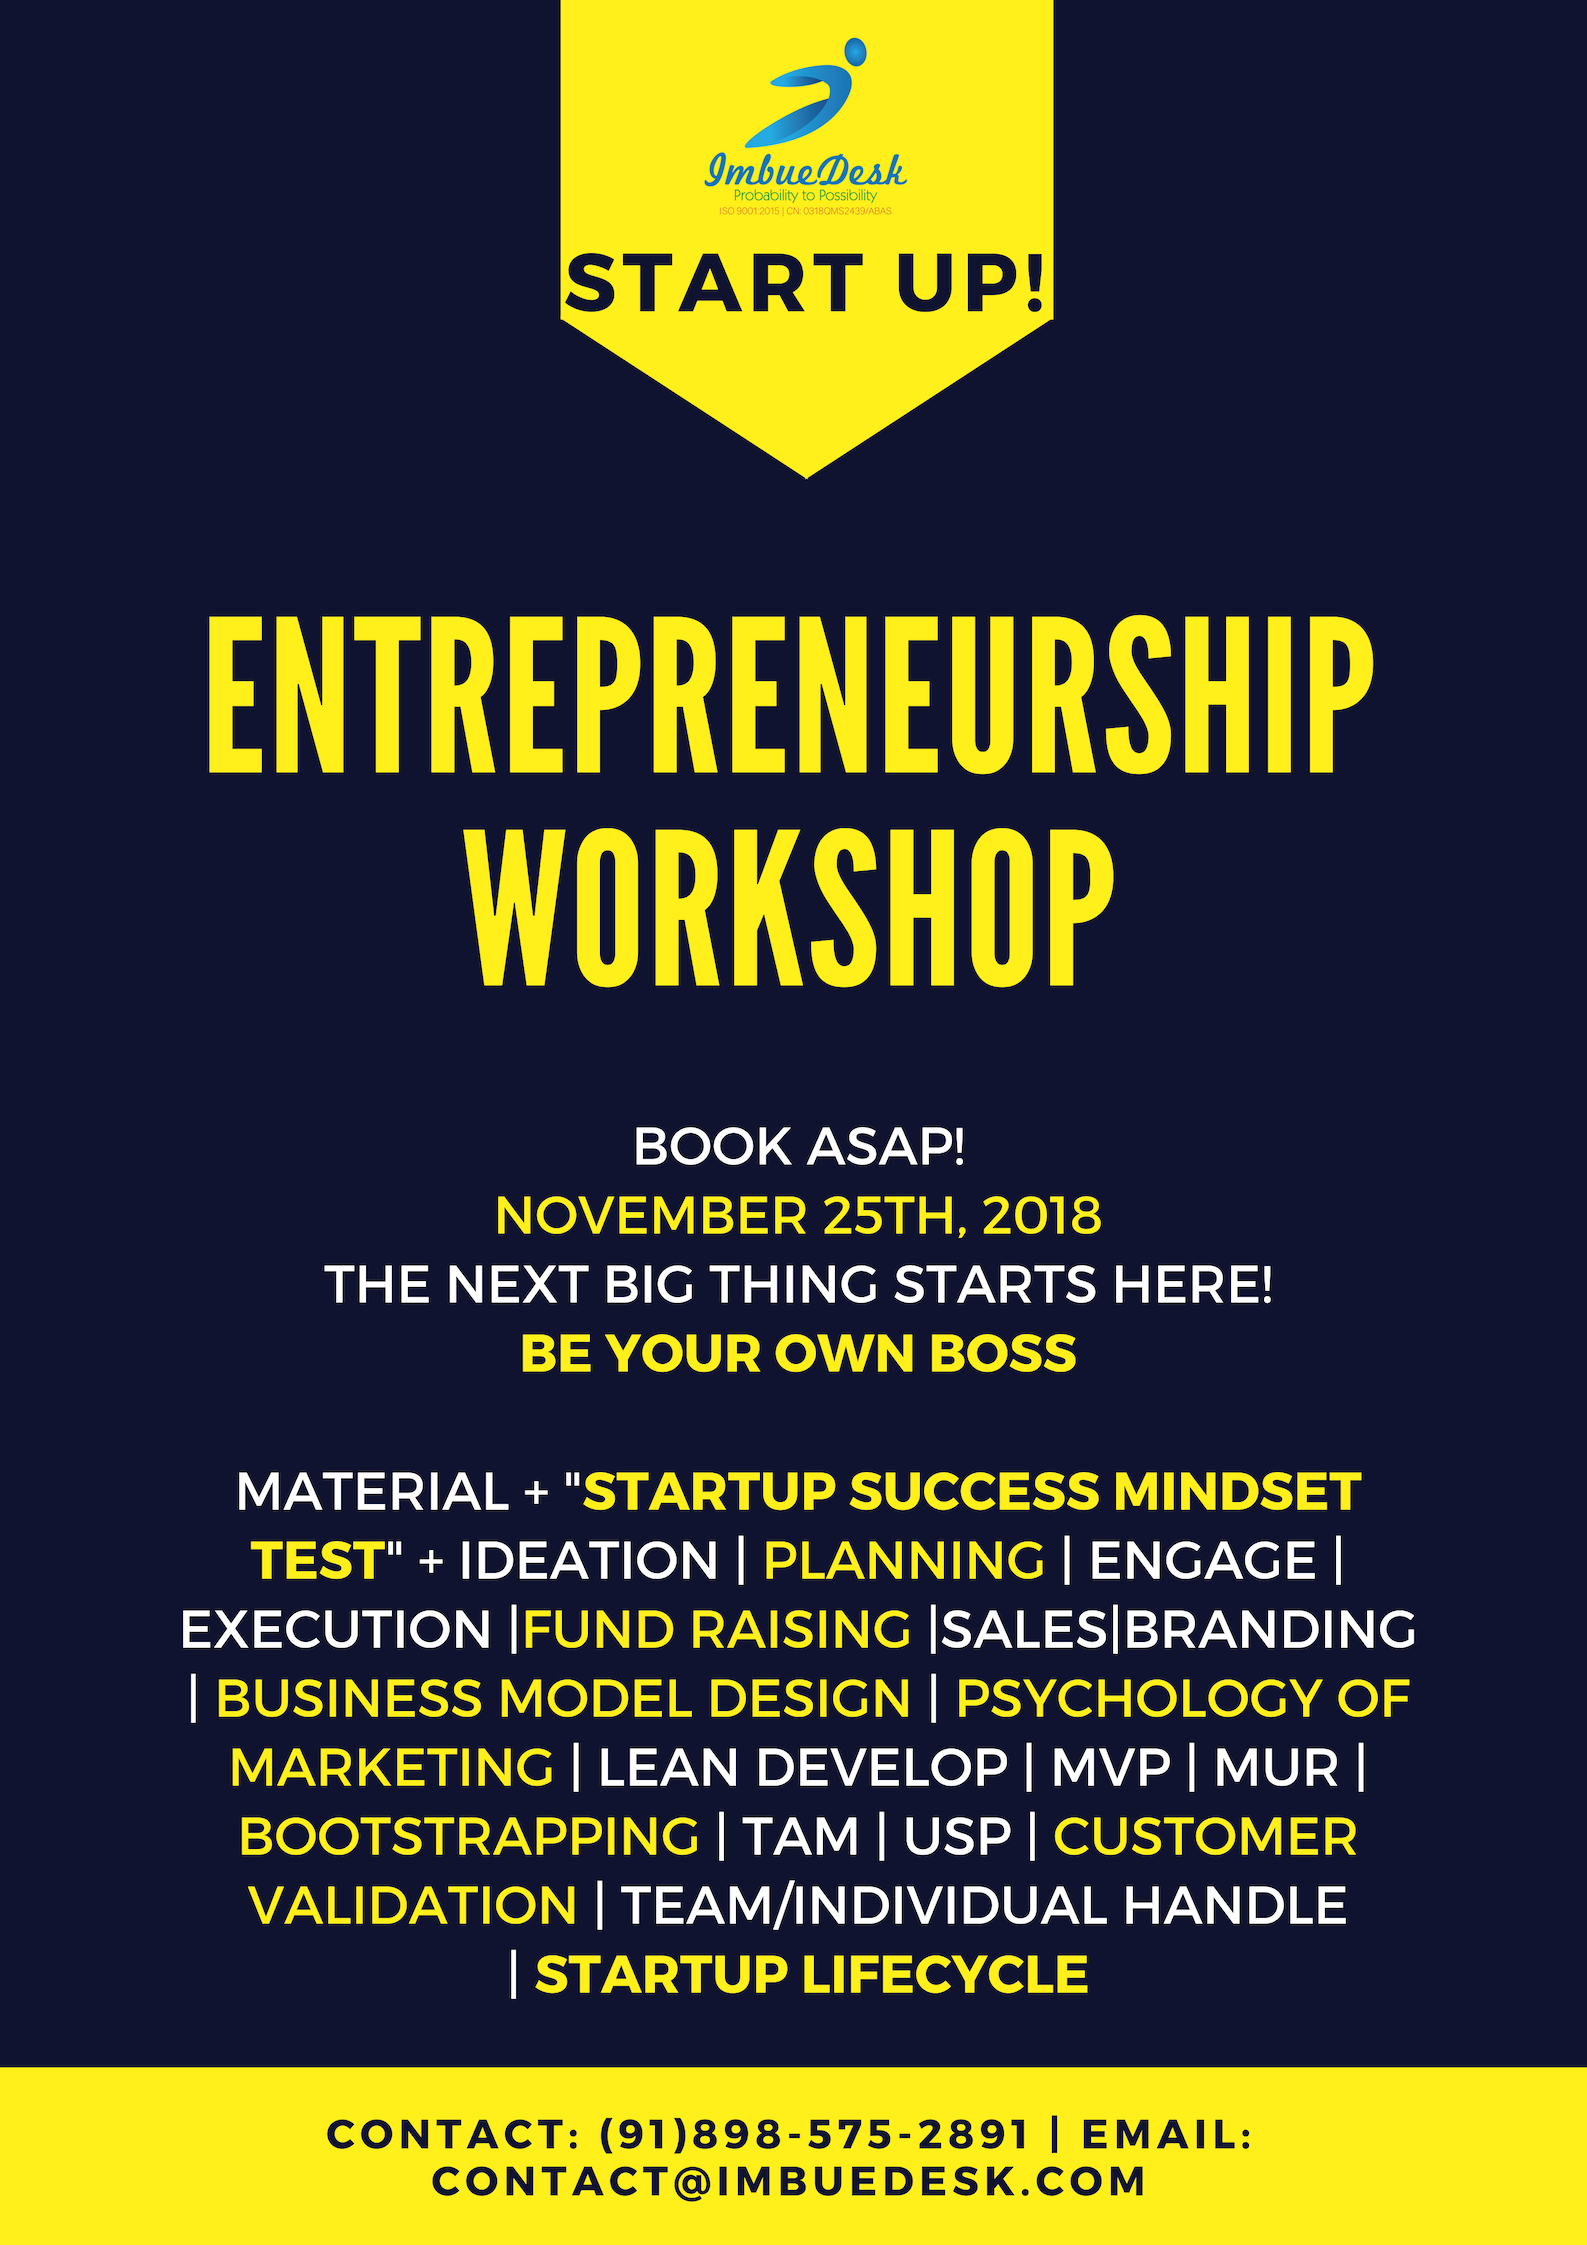 Startup and Entrepreneurship Workshop, One day Mastery of Business Process  Tickets by Puranam Pradeep Picasso, 25 Nov, 2018, Hyderabad Event